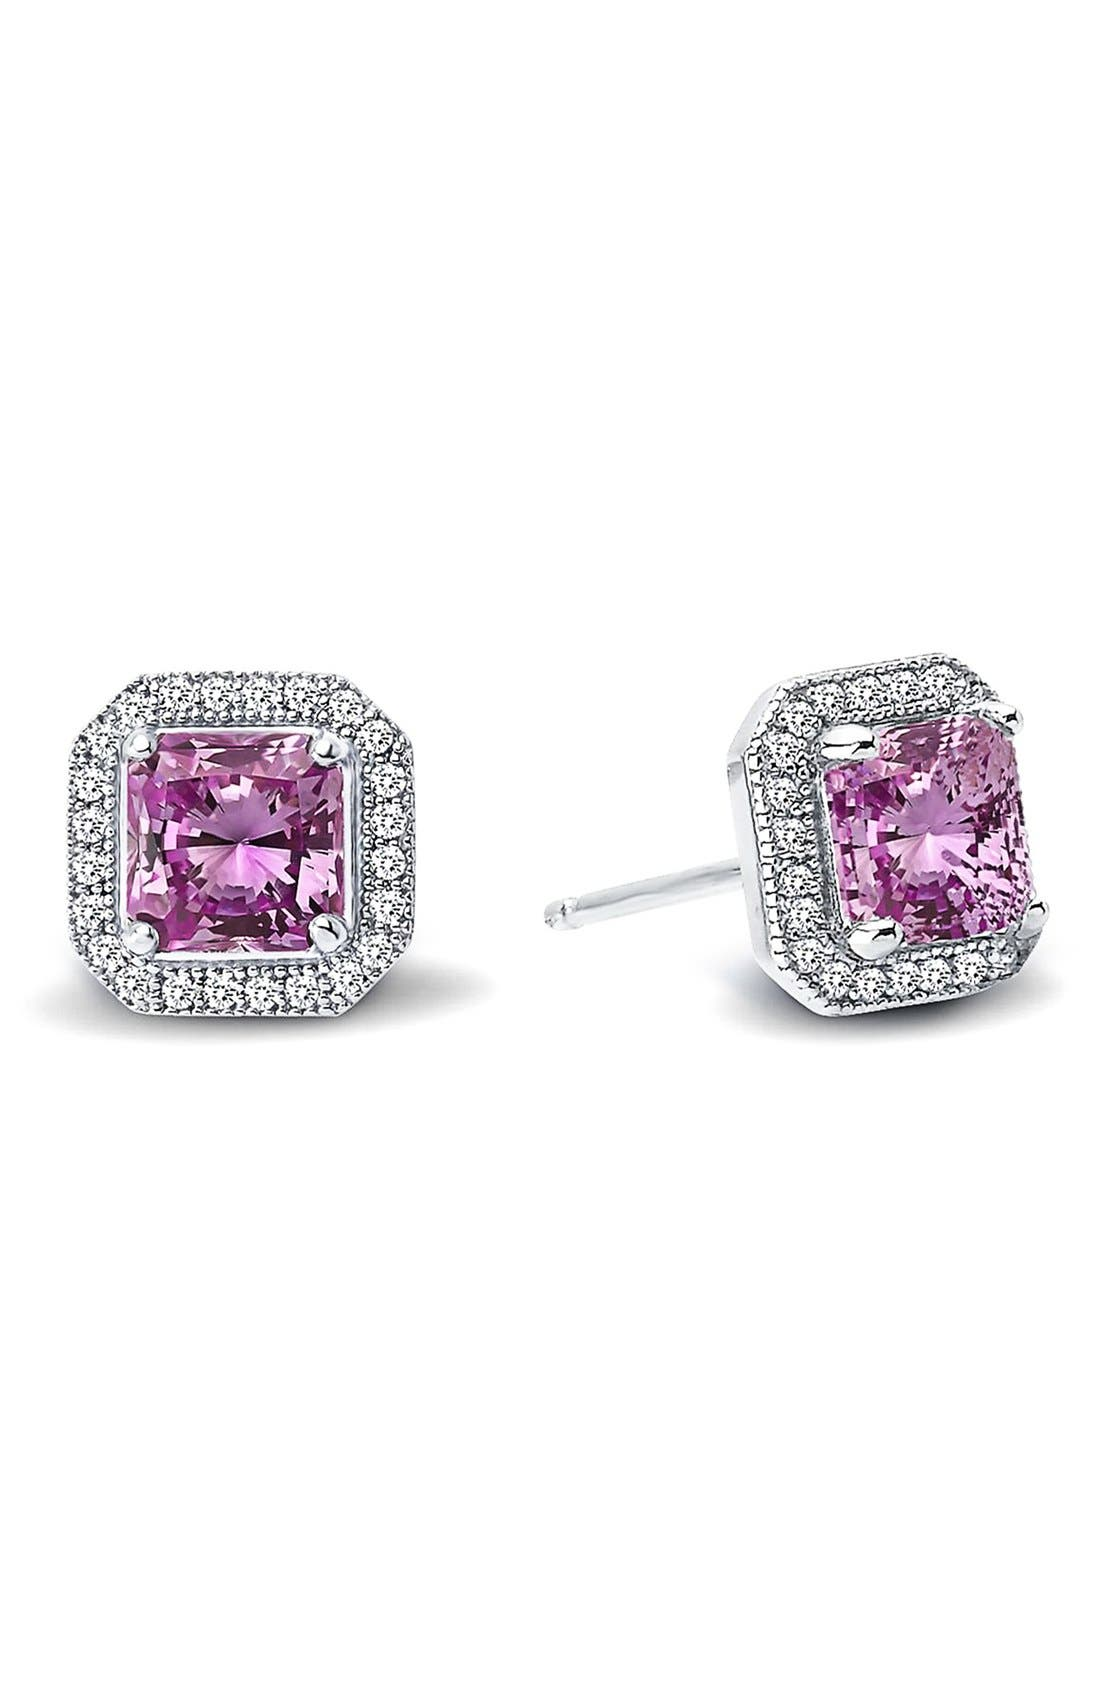 'Lassaire' Stud Earrings,                             Main thumbnail 1, color,                             040